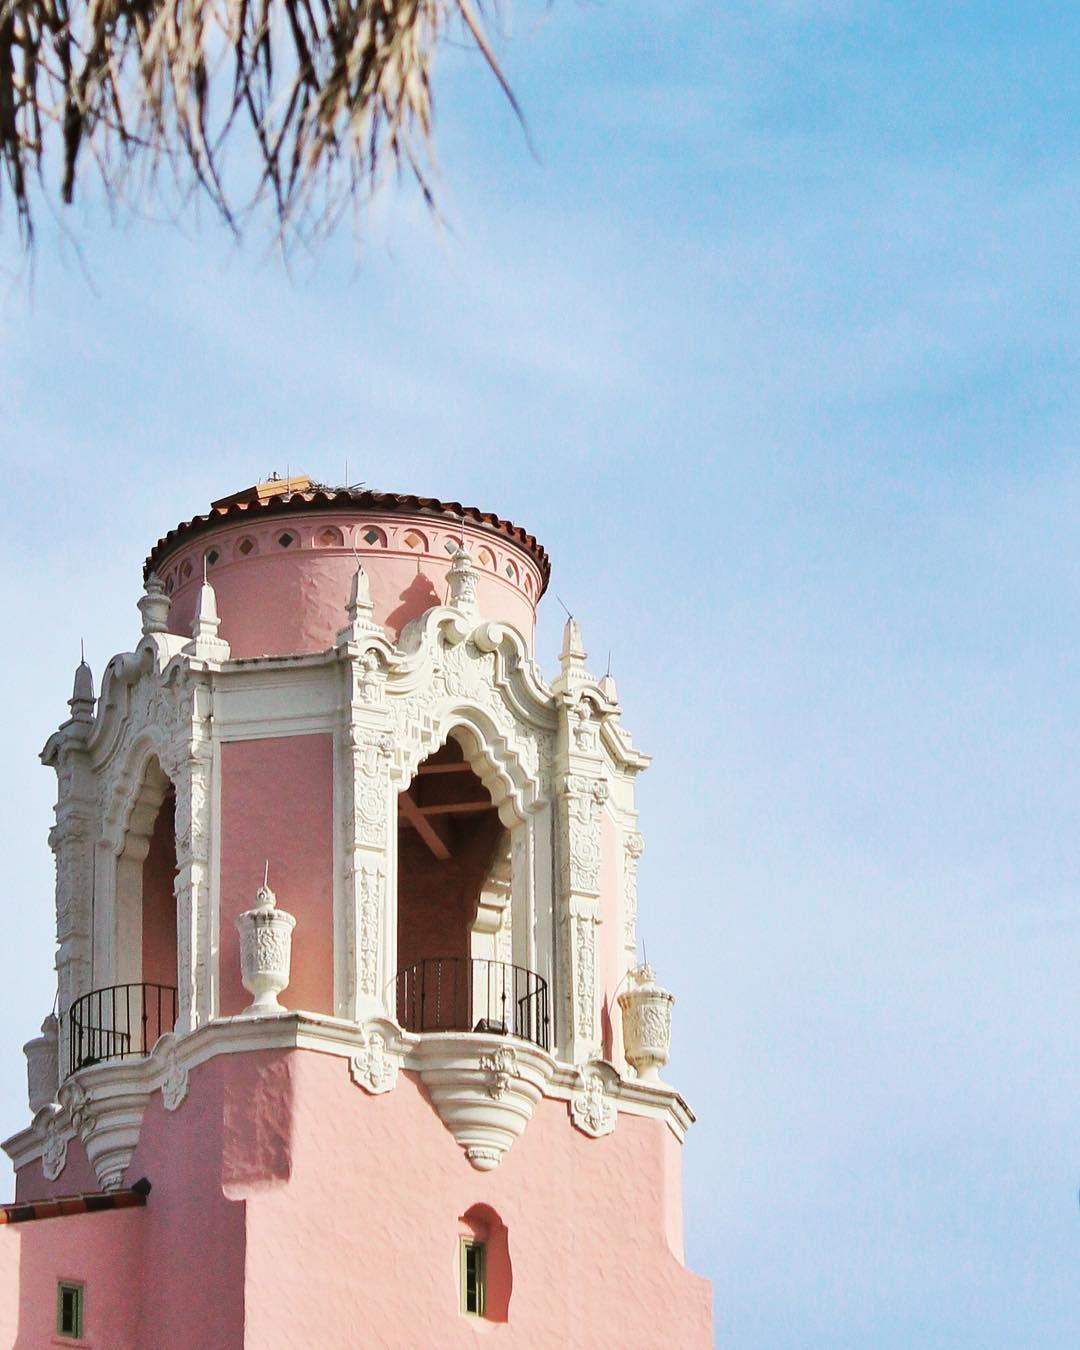 Pink  #vinoy #stpetersburgflorida #stpete #igersstpete #florida #roamflorida #pureflorida #staysaltyflorida #architecture #architecturephotography #pink #tower #minimalexperience #candyminimal